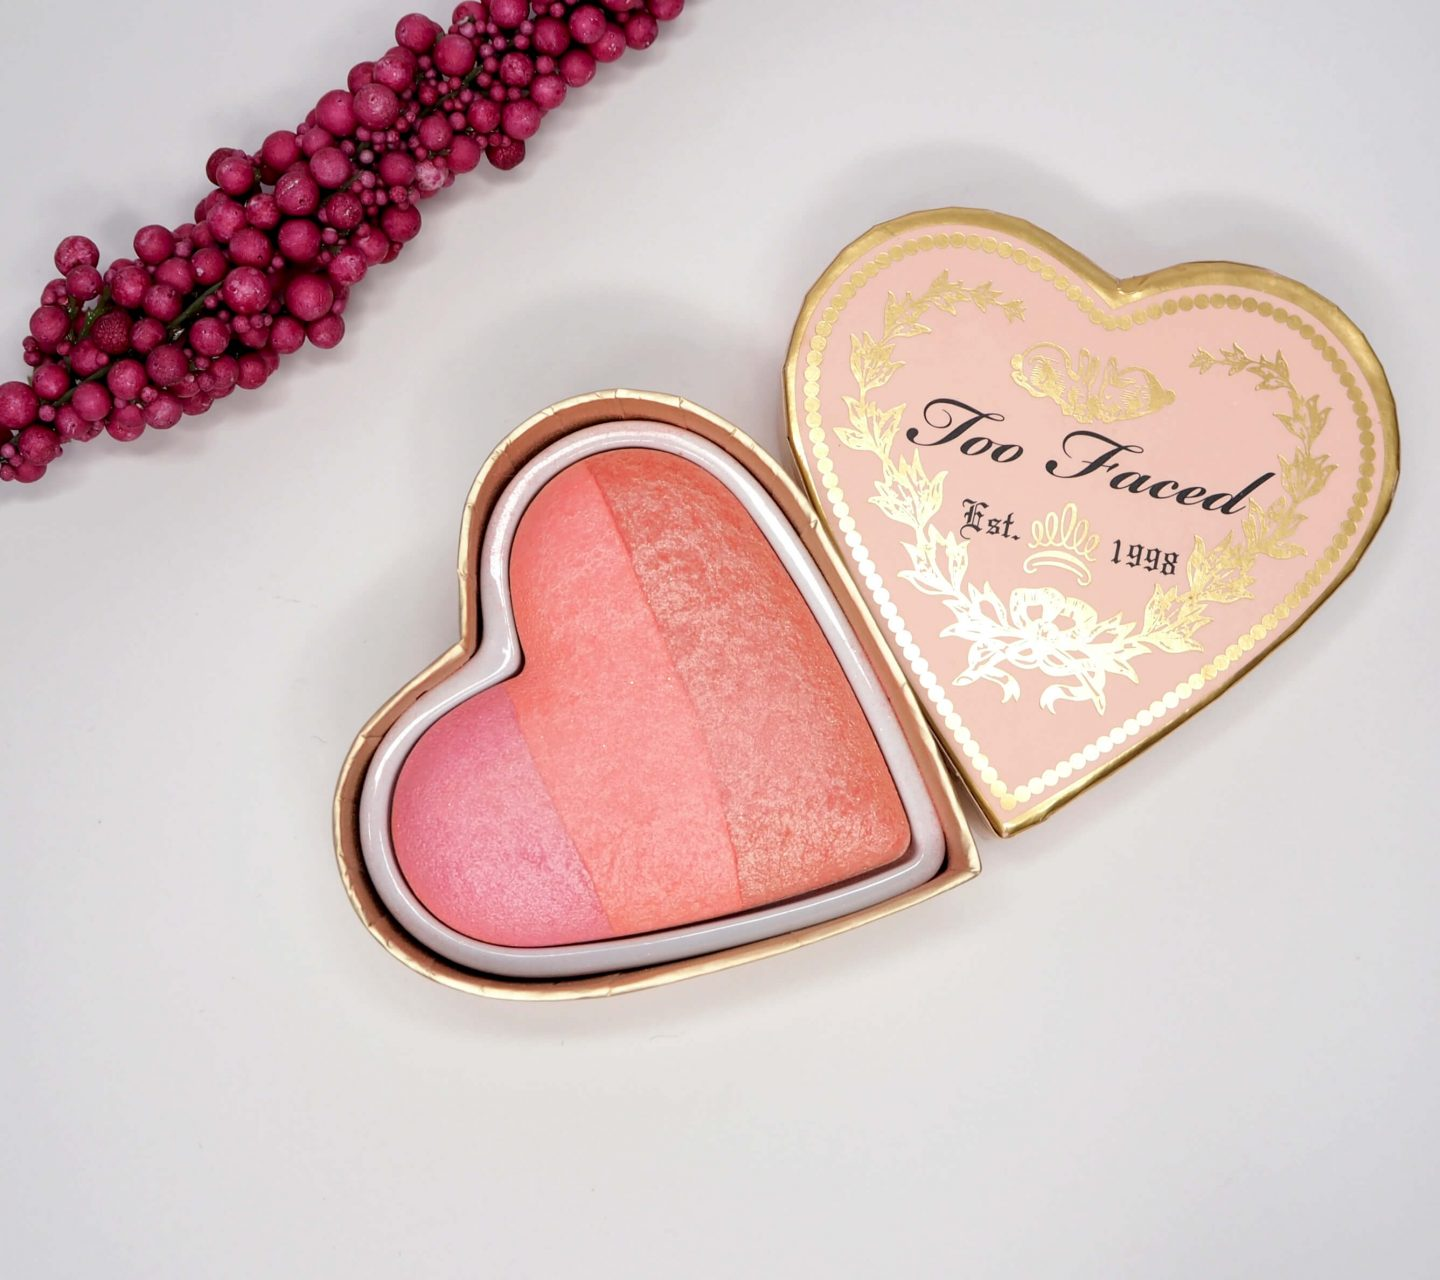 Candy Glow Sweethearts Perfect Flush Blush